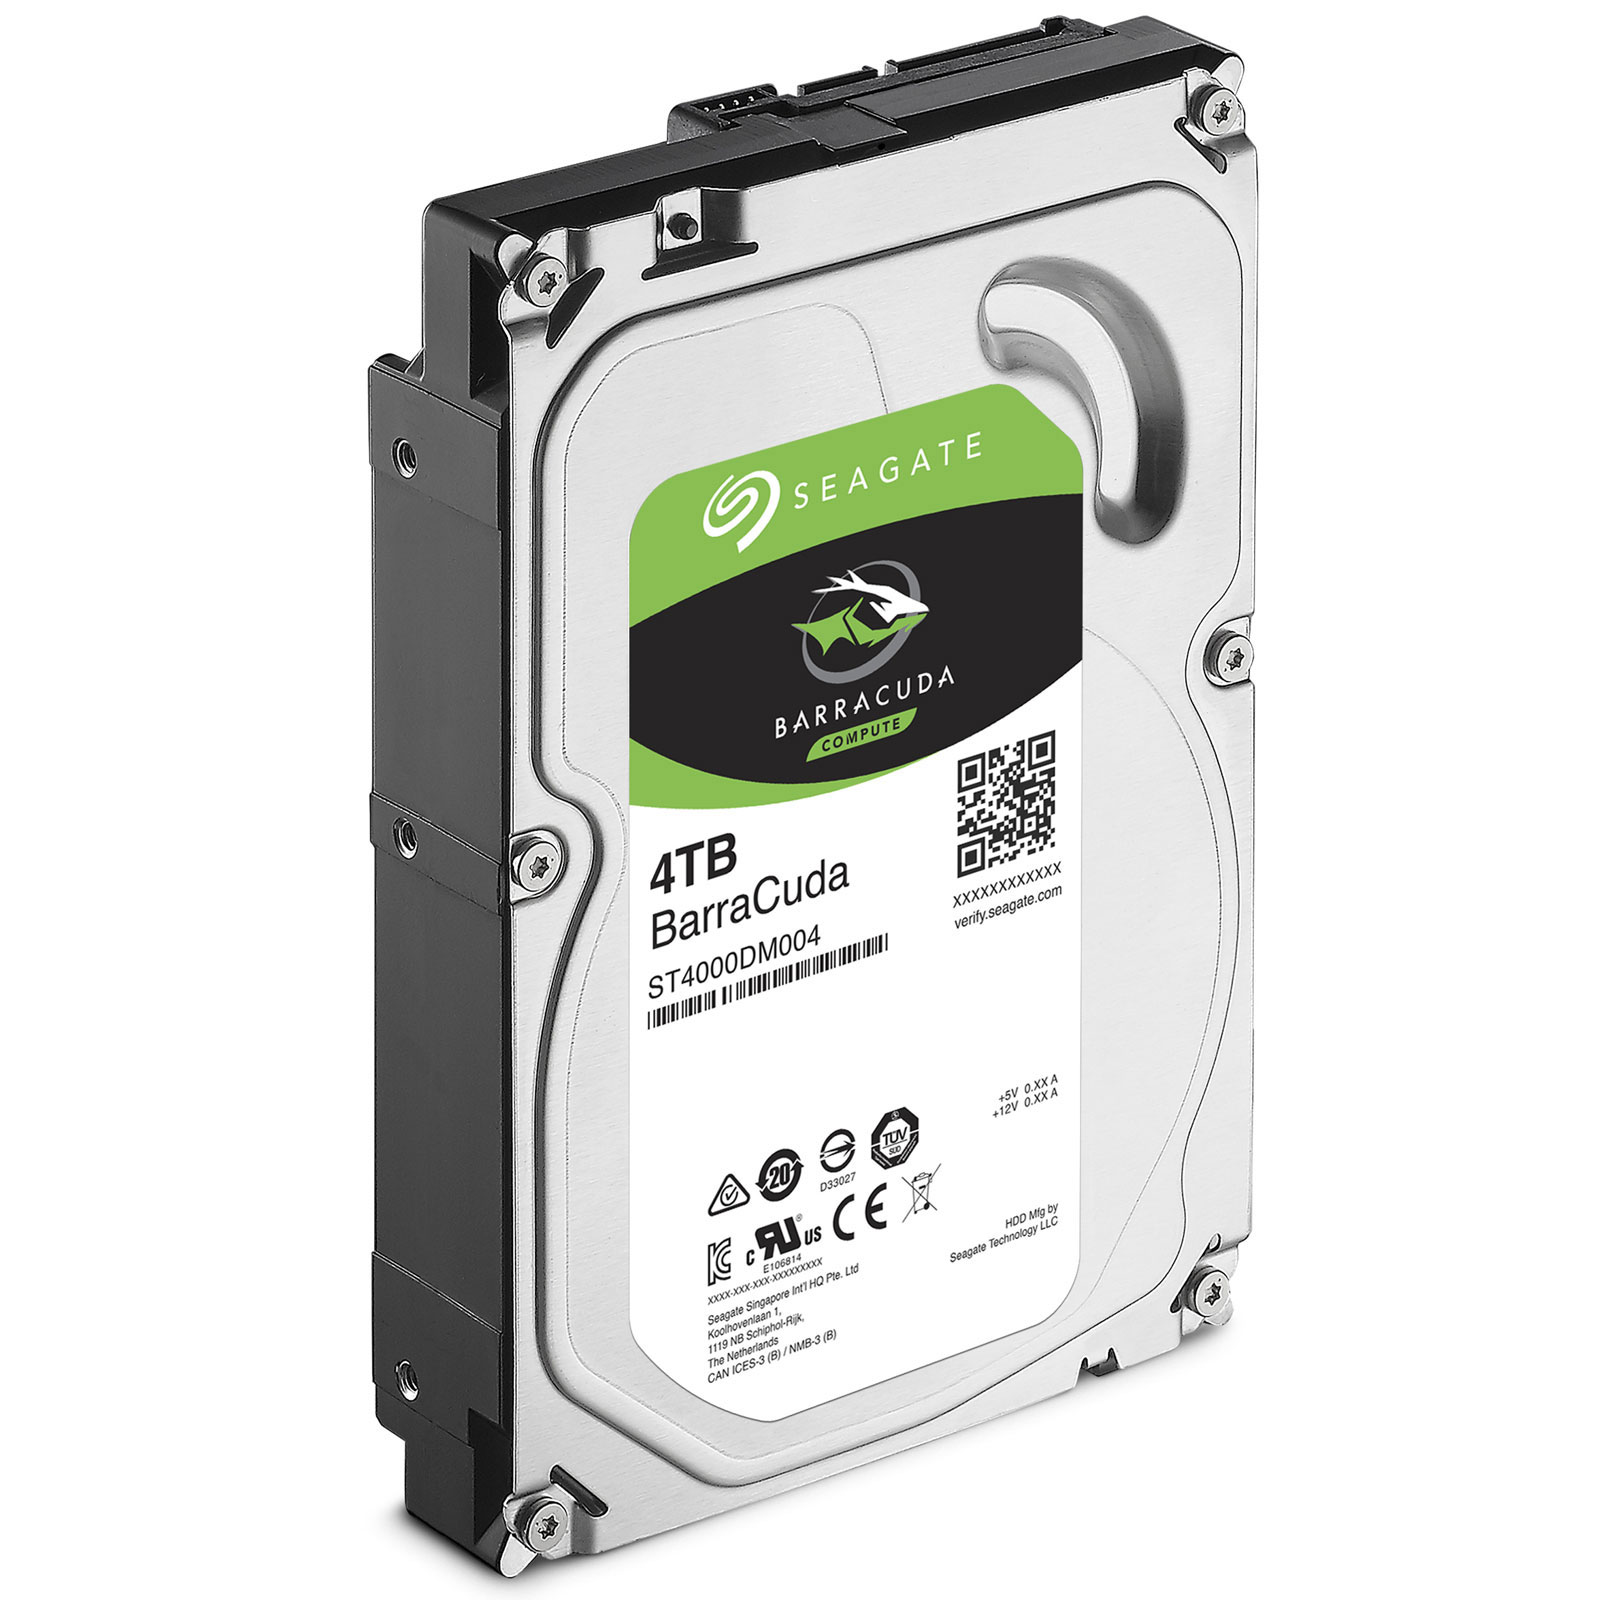 "Seagate 4To 5400tr SATA III 256Mo Barracuda ST4000DM004 - Disque dur interne 3.5"" - 2"